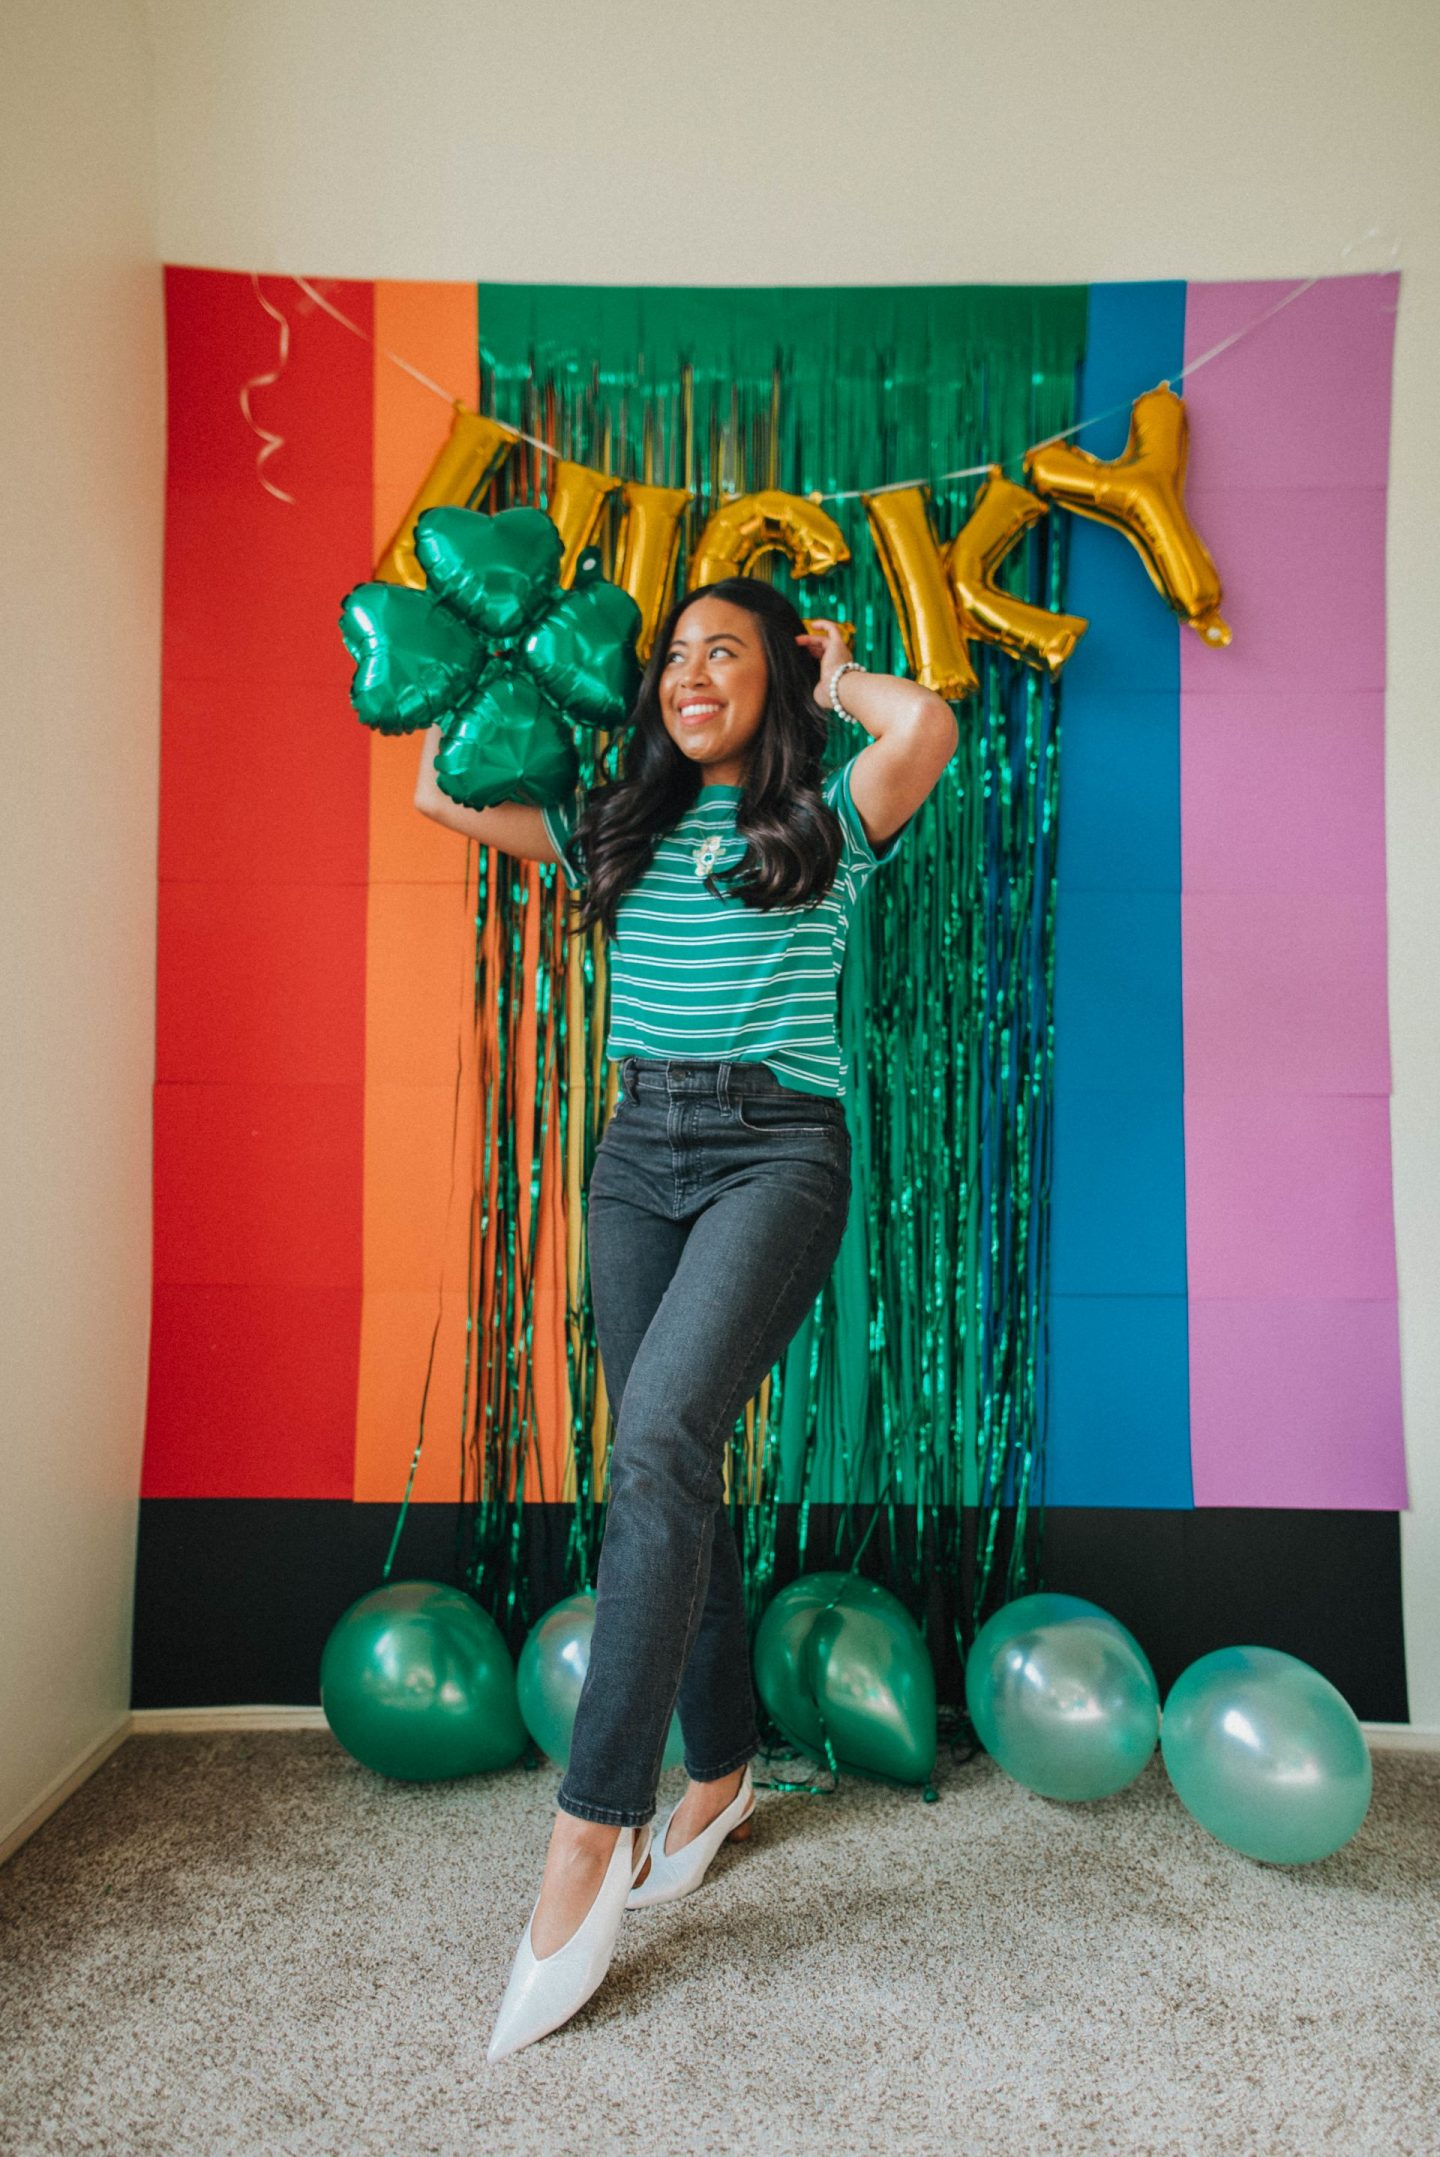 8 St. Patrick's Day Posing Ideas You Can Try